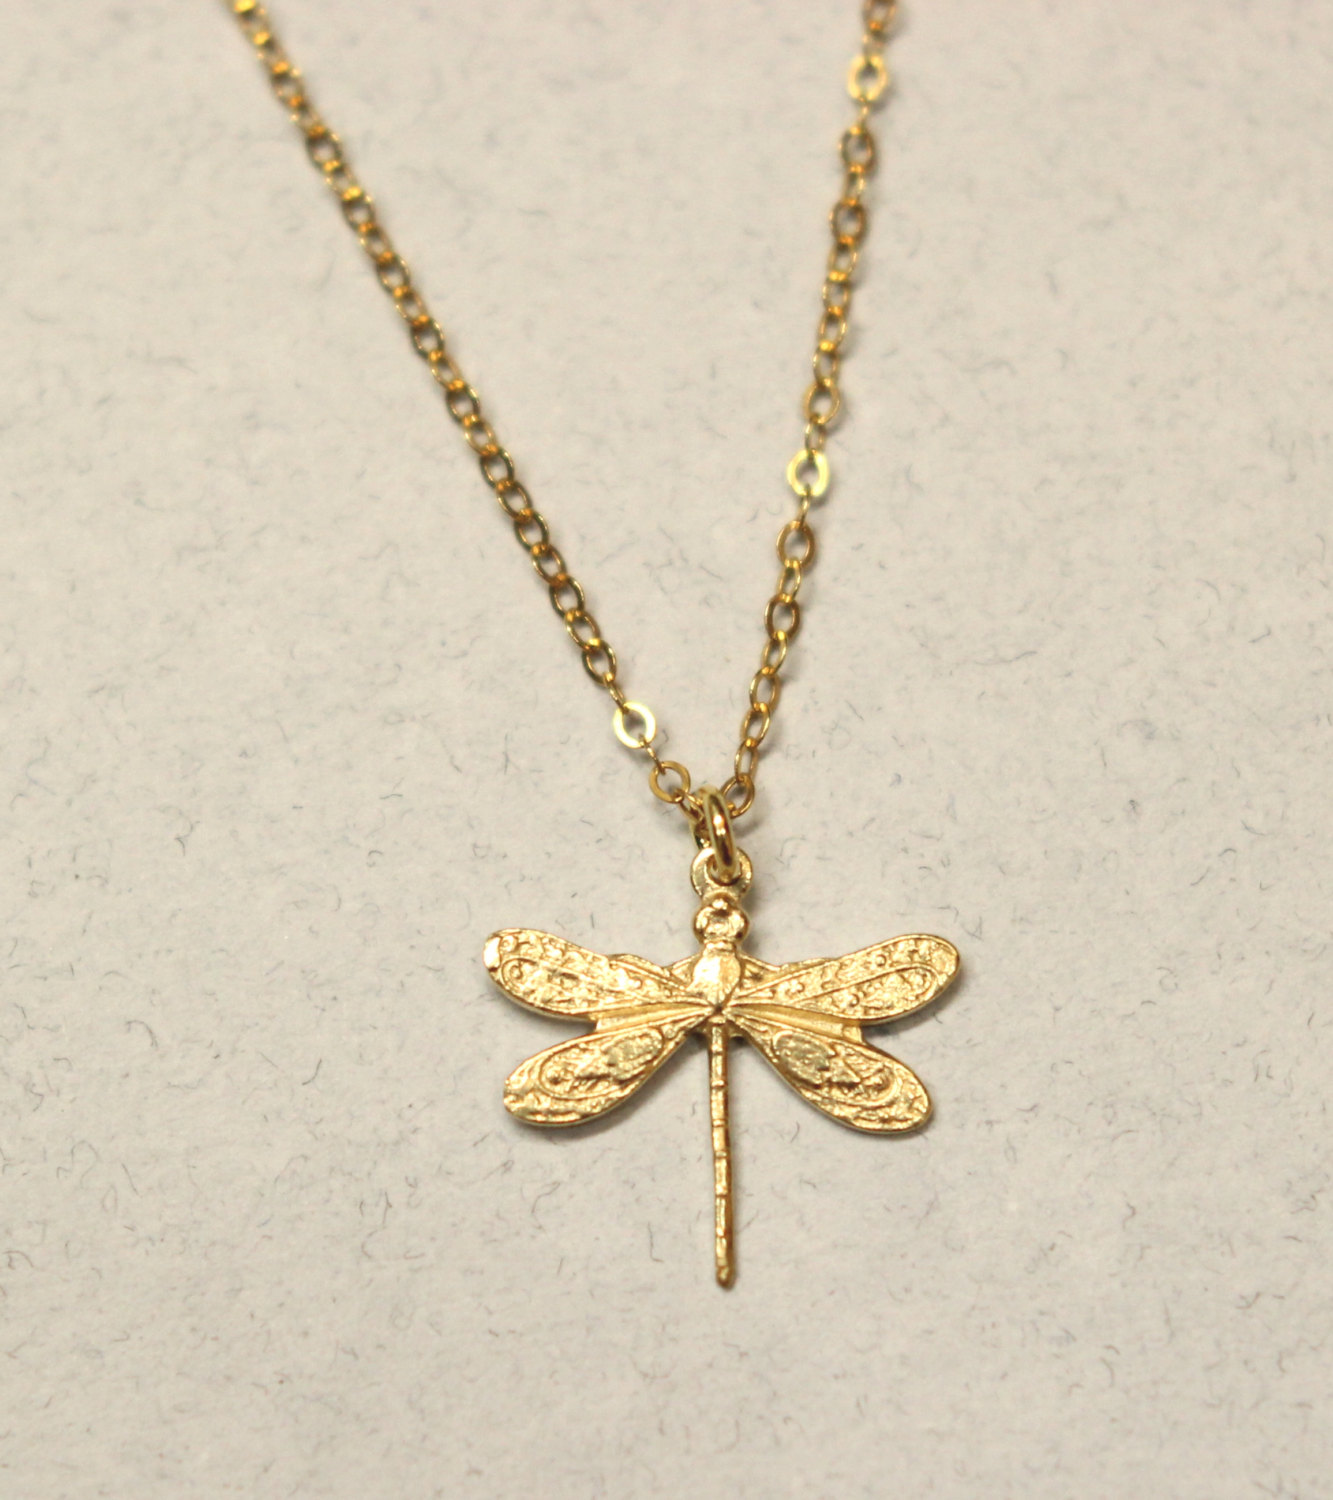 jewellery products sterling silver dragonfly dandy giant image rocks necklace